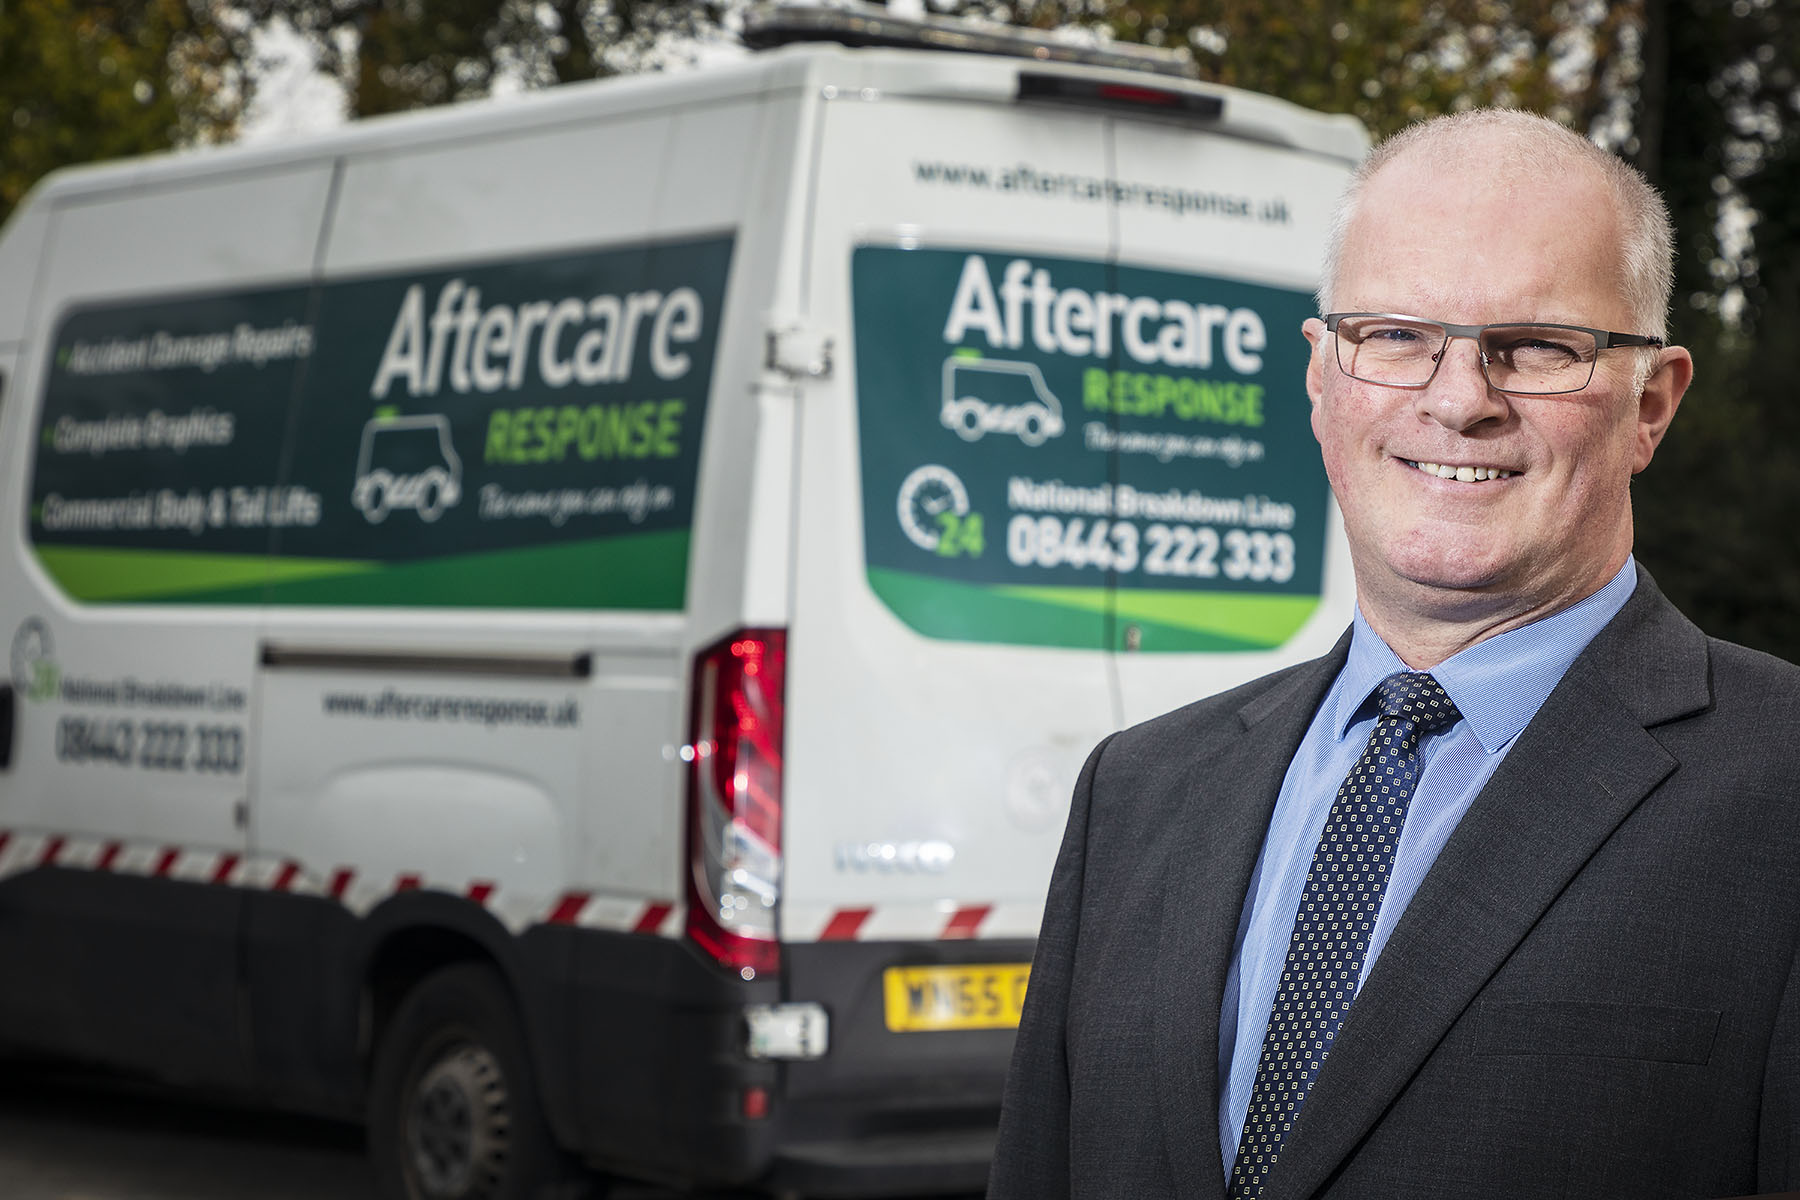 Andy brings a customer's perspective to his new role at Aftercare Response